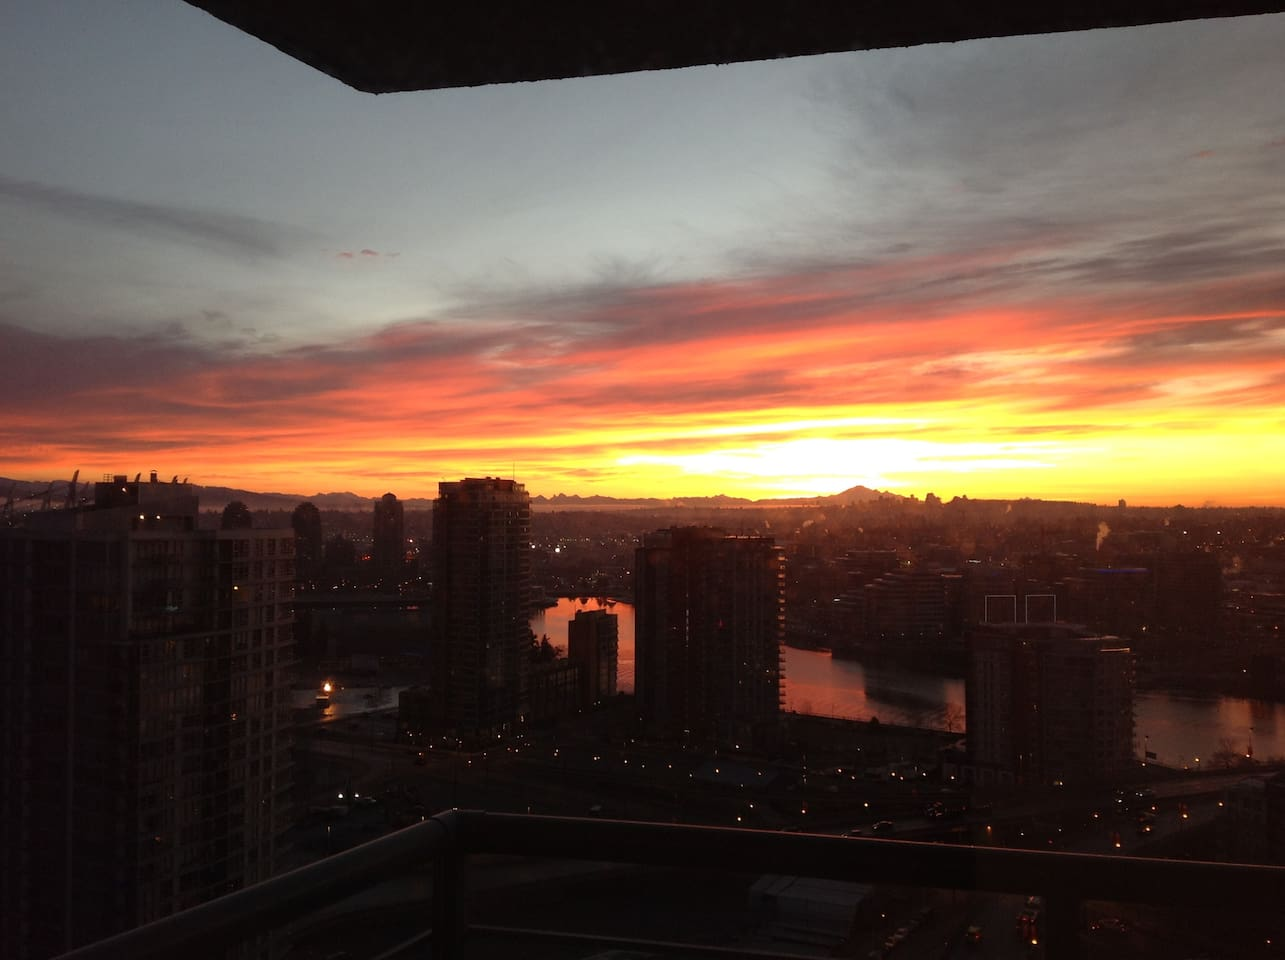 Stunning sunrise reflecting in the waters of False creek - the view from every room!